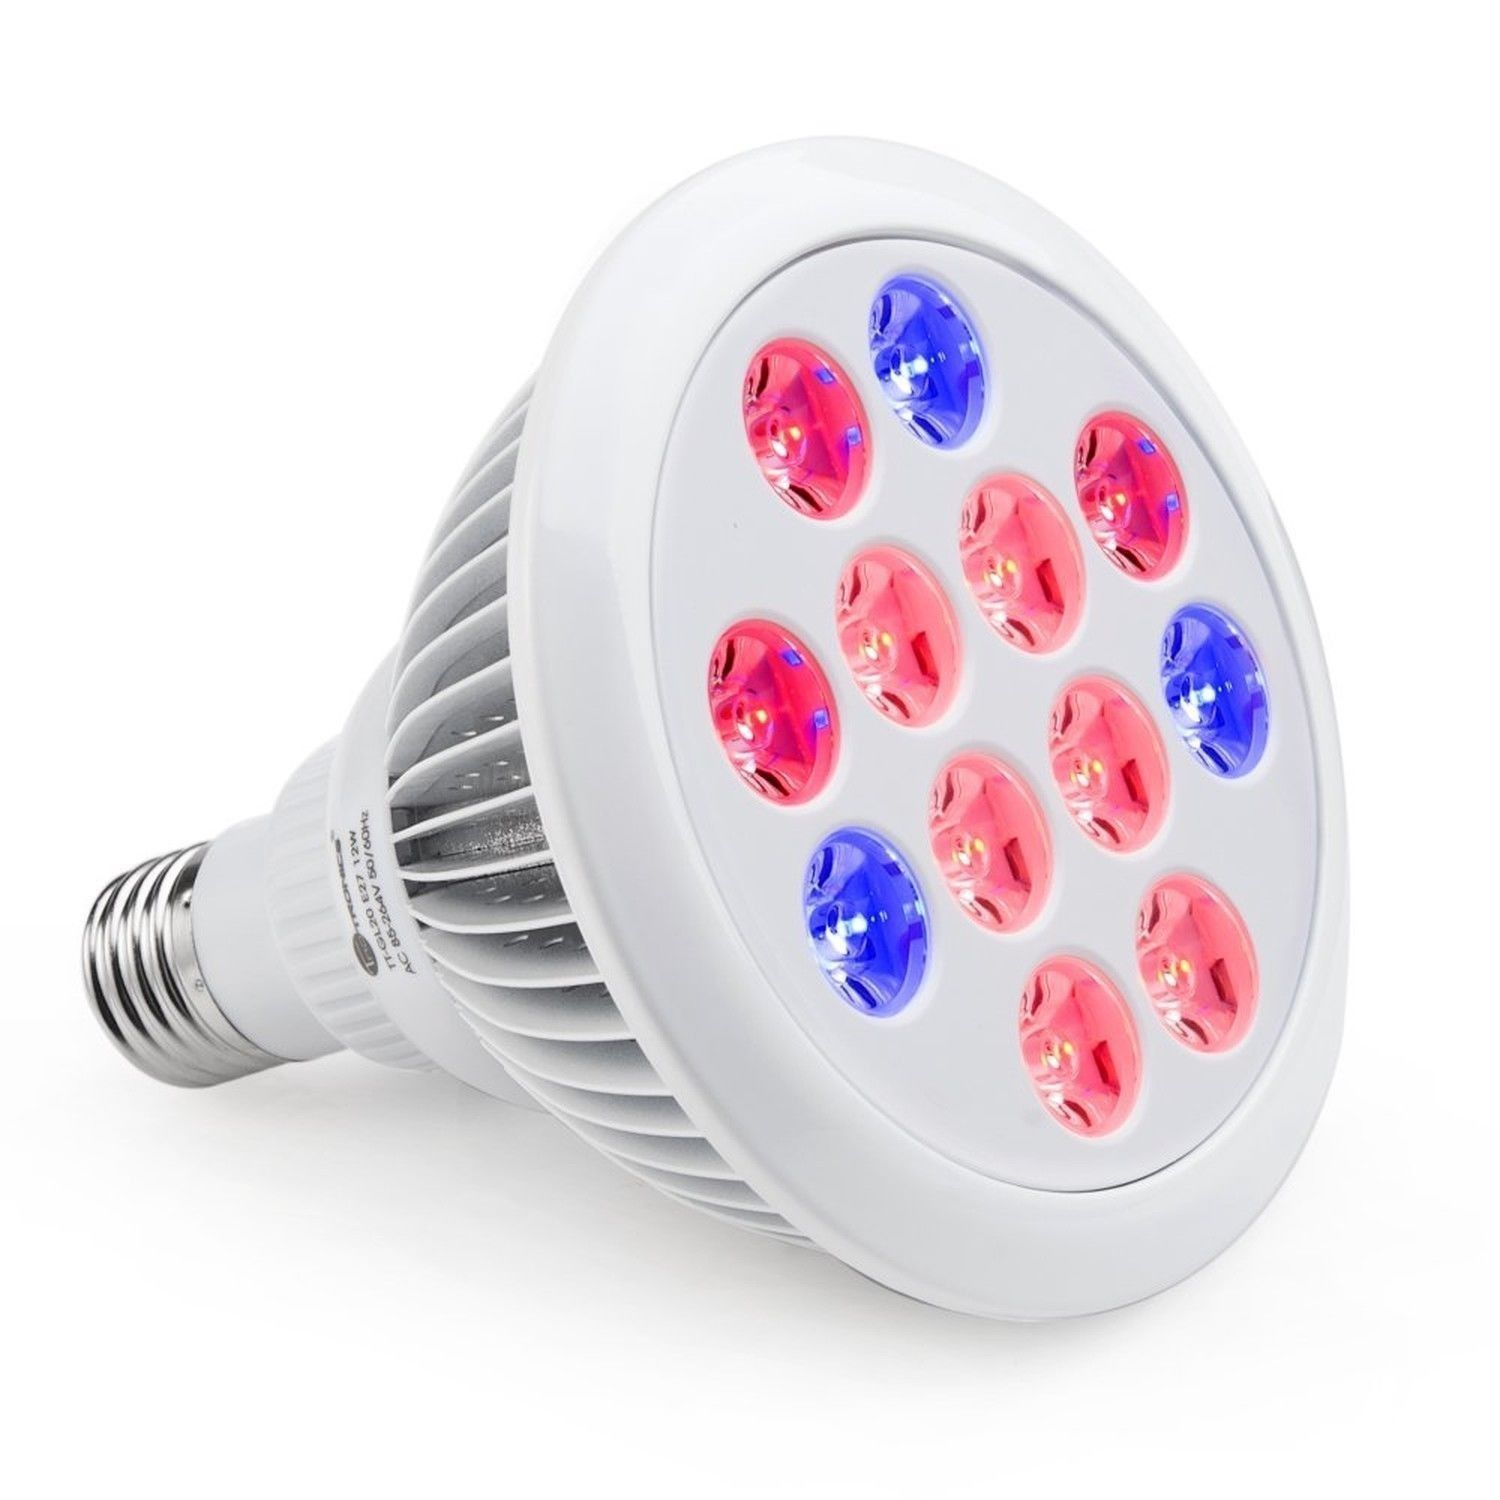 decor led with for light size growing yield grow x reviews lights best